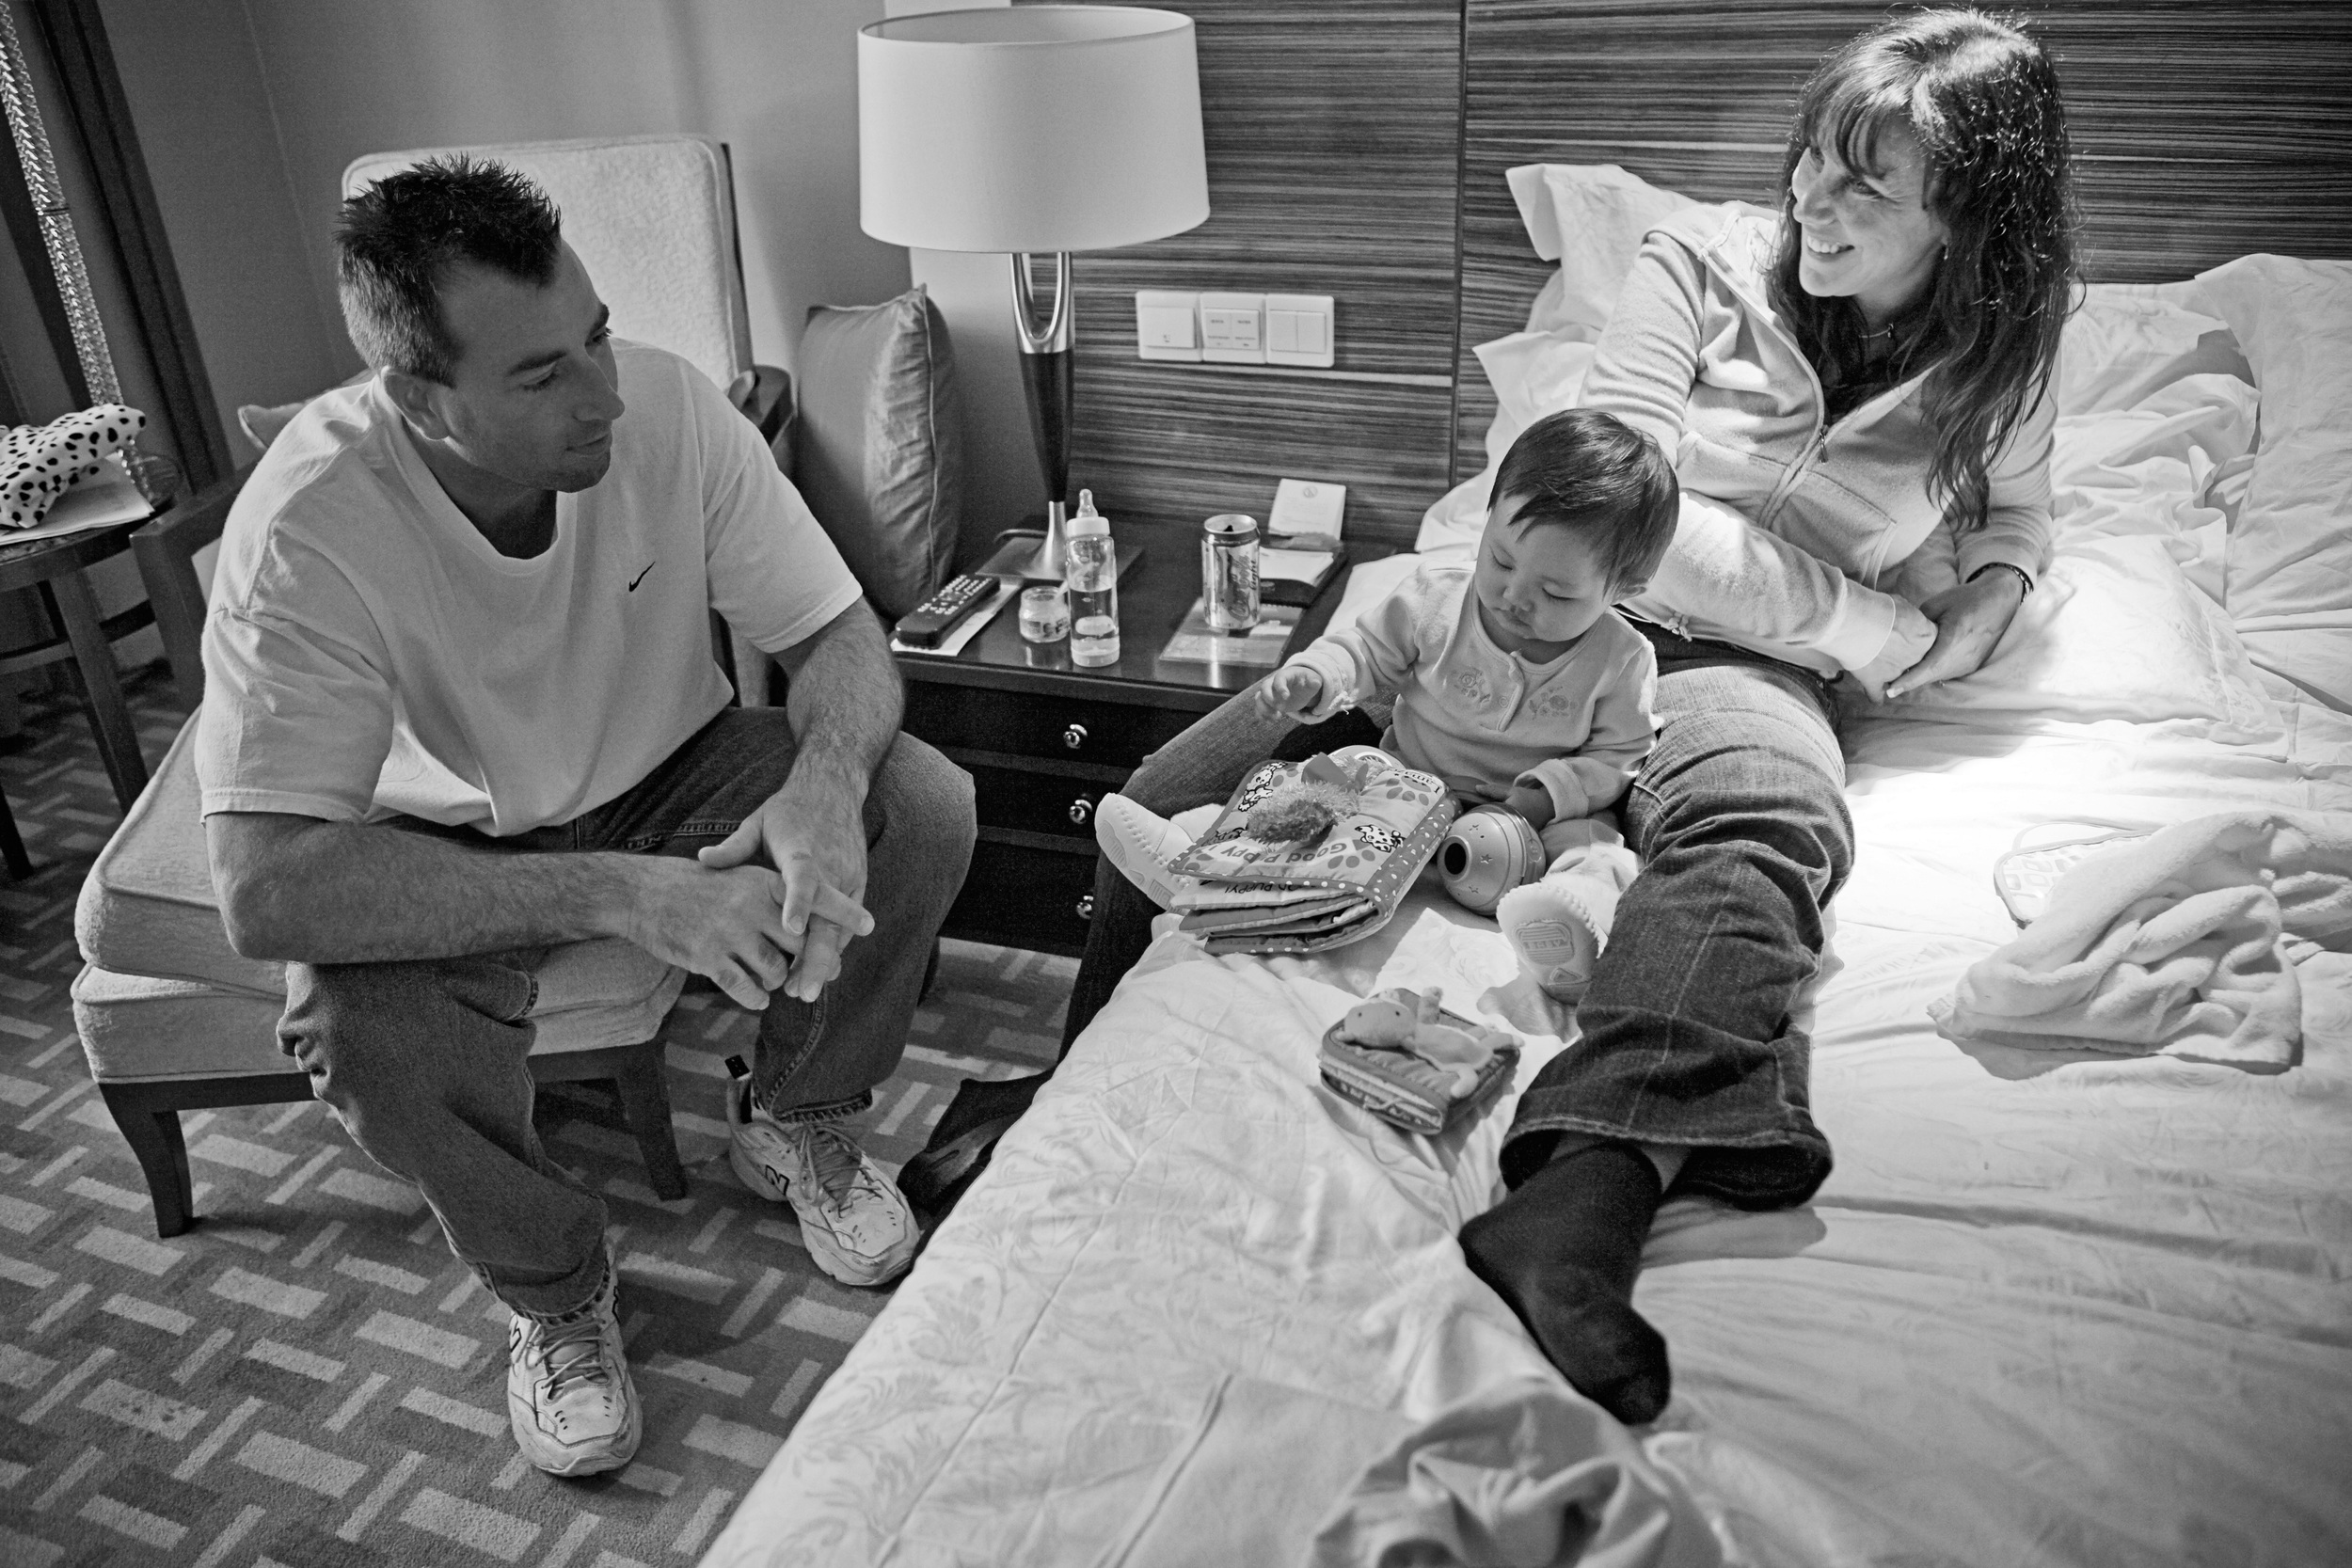 Bob, Karen and Kailee share time together in the hotel room.